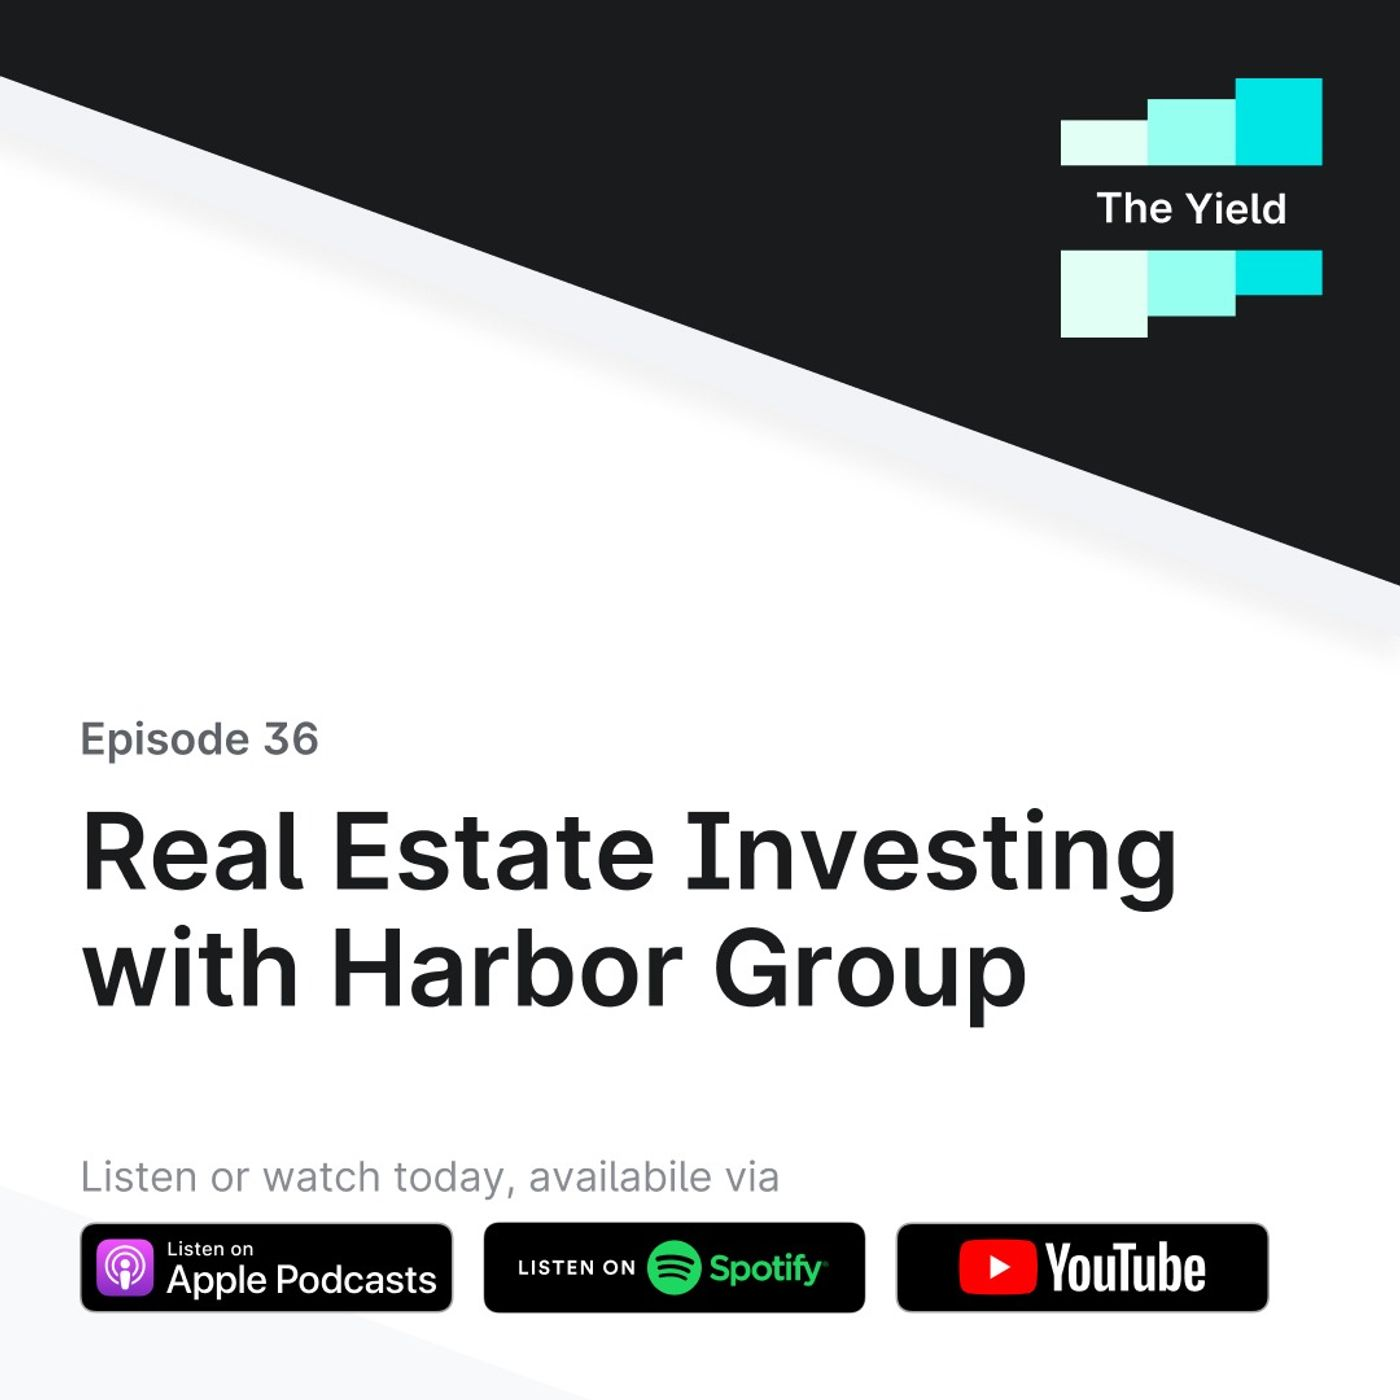 Real Estate Investing with Harbor Group